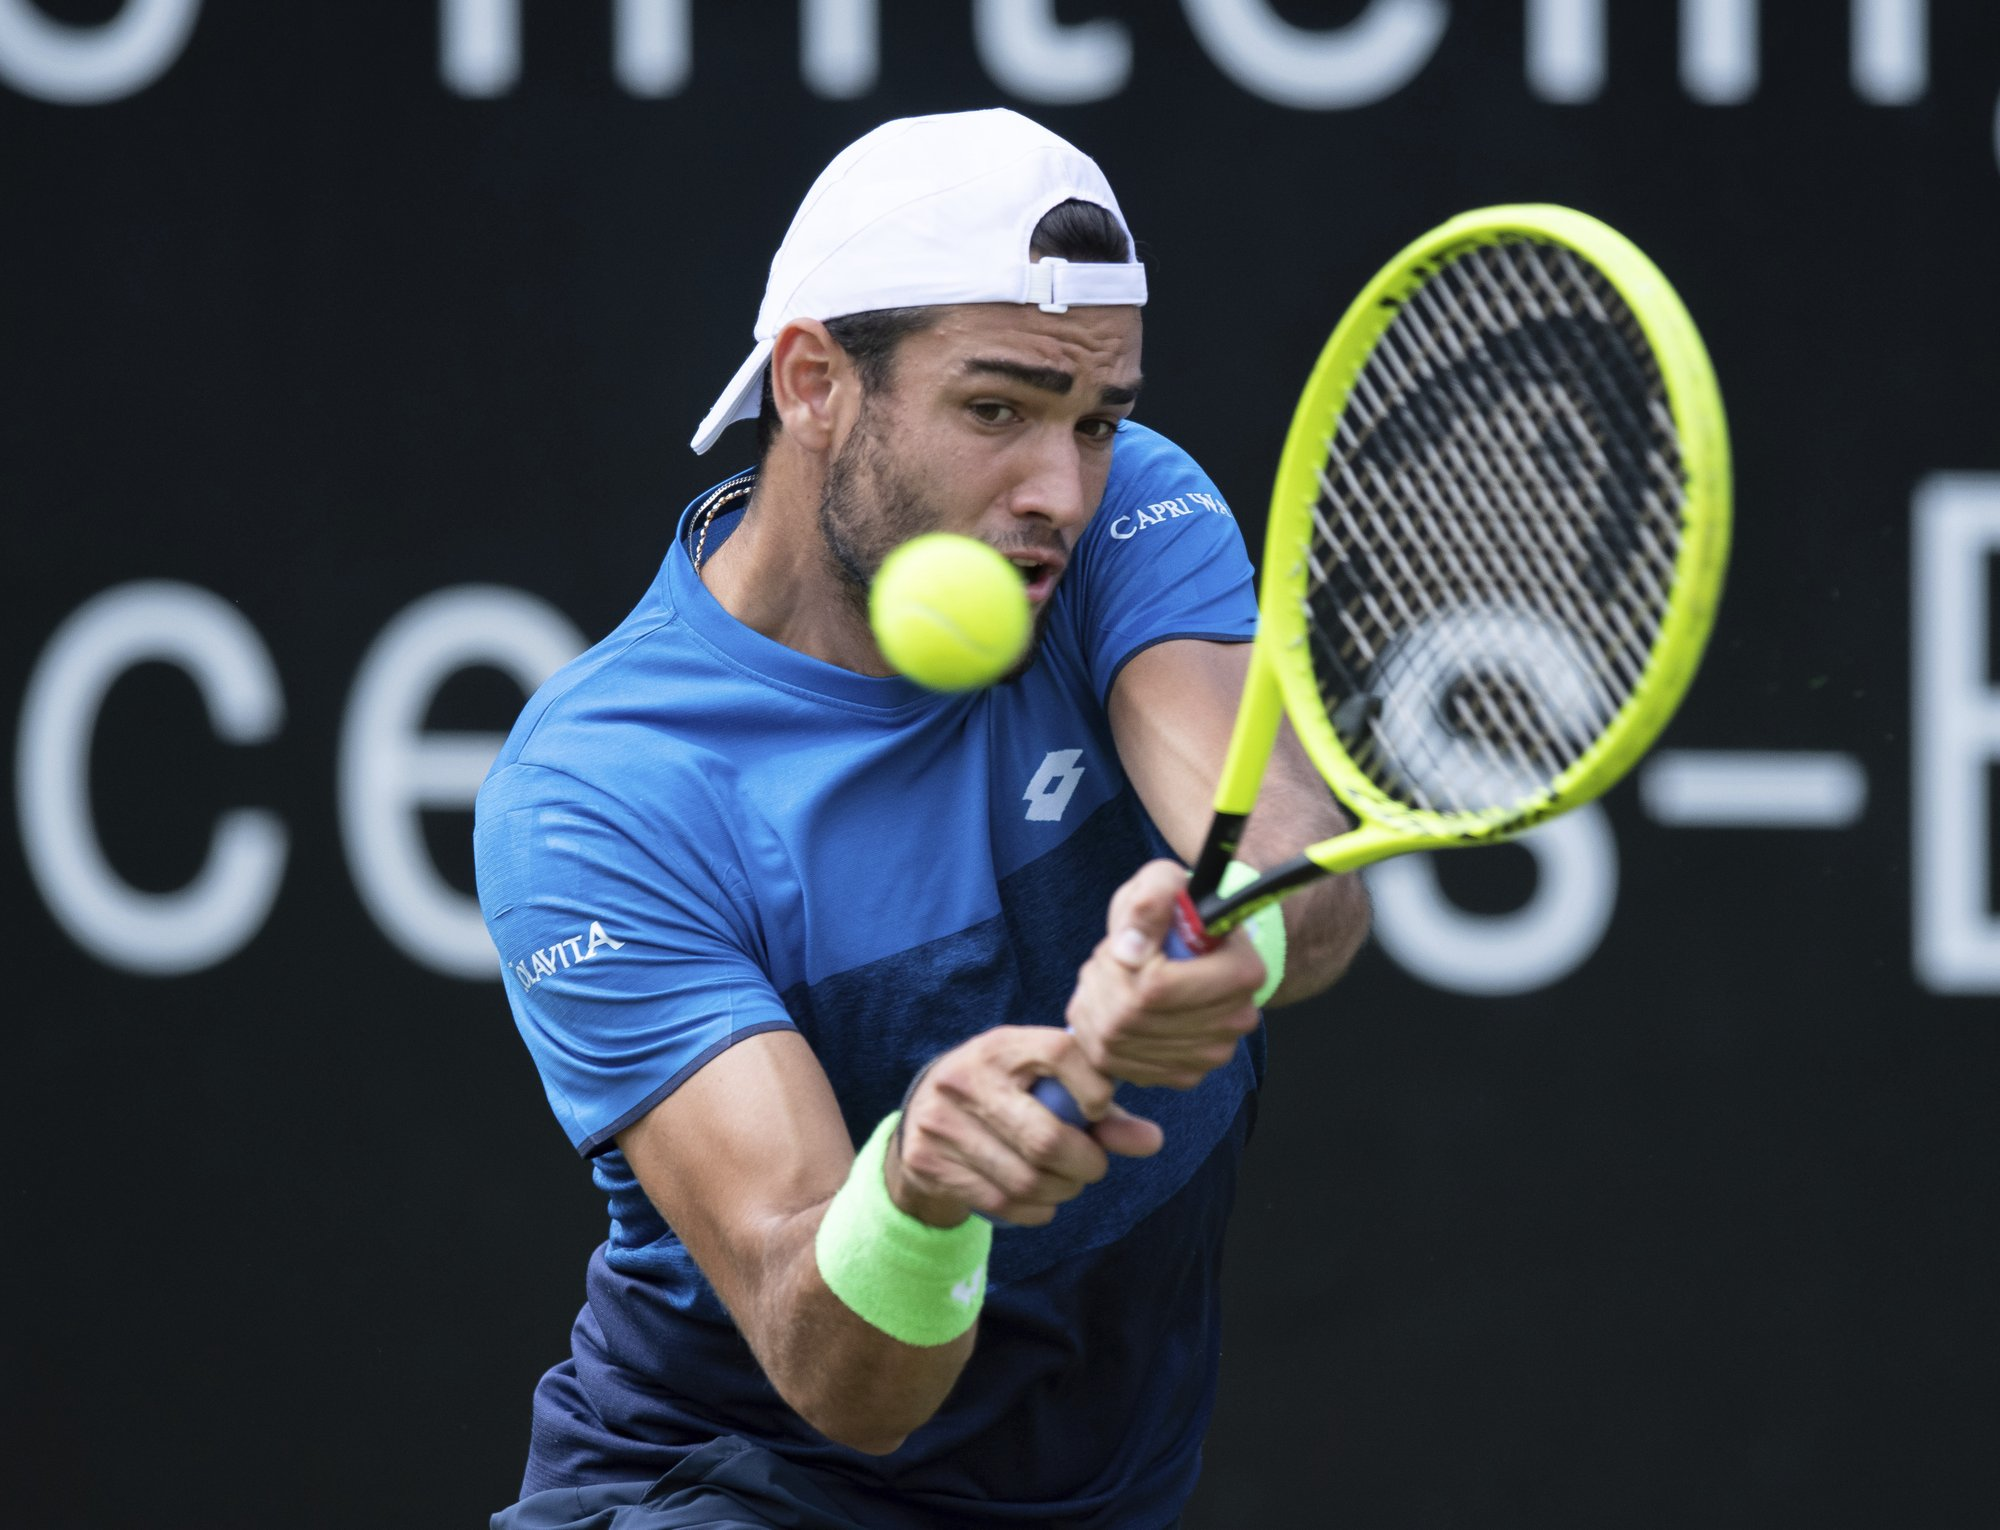 Berrettini breaks through on grass to win Stuttgart Open